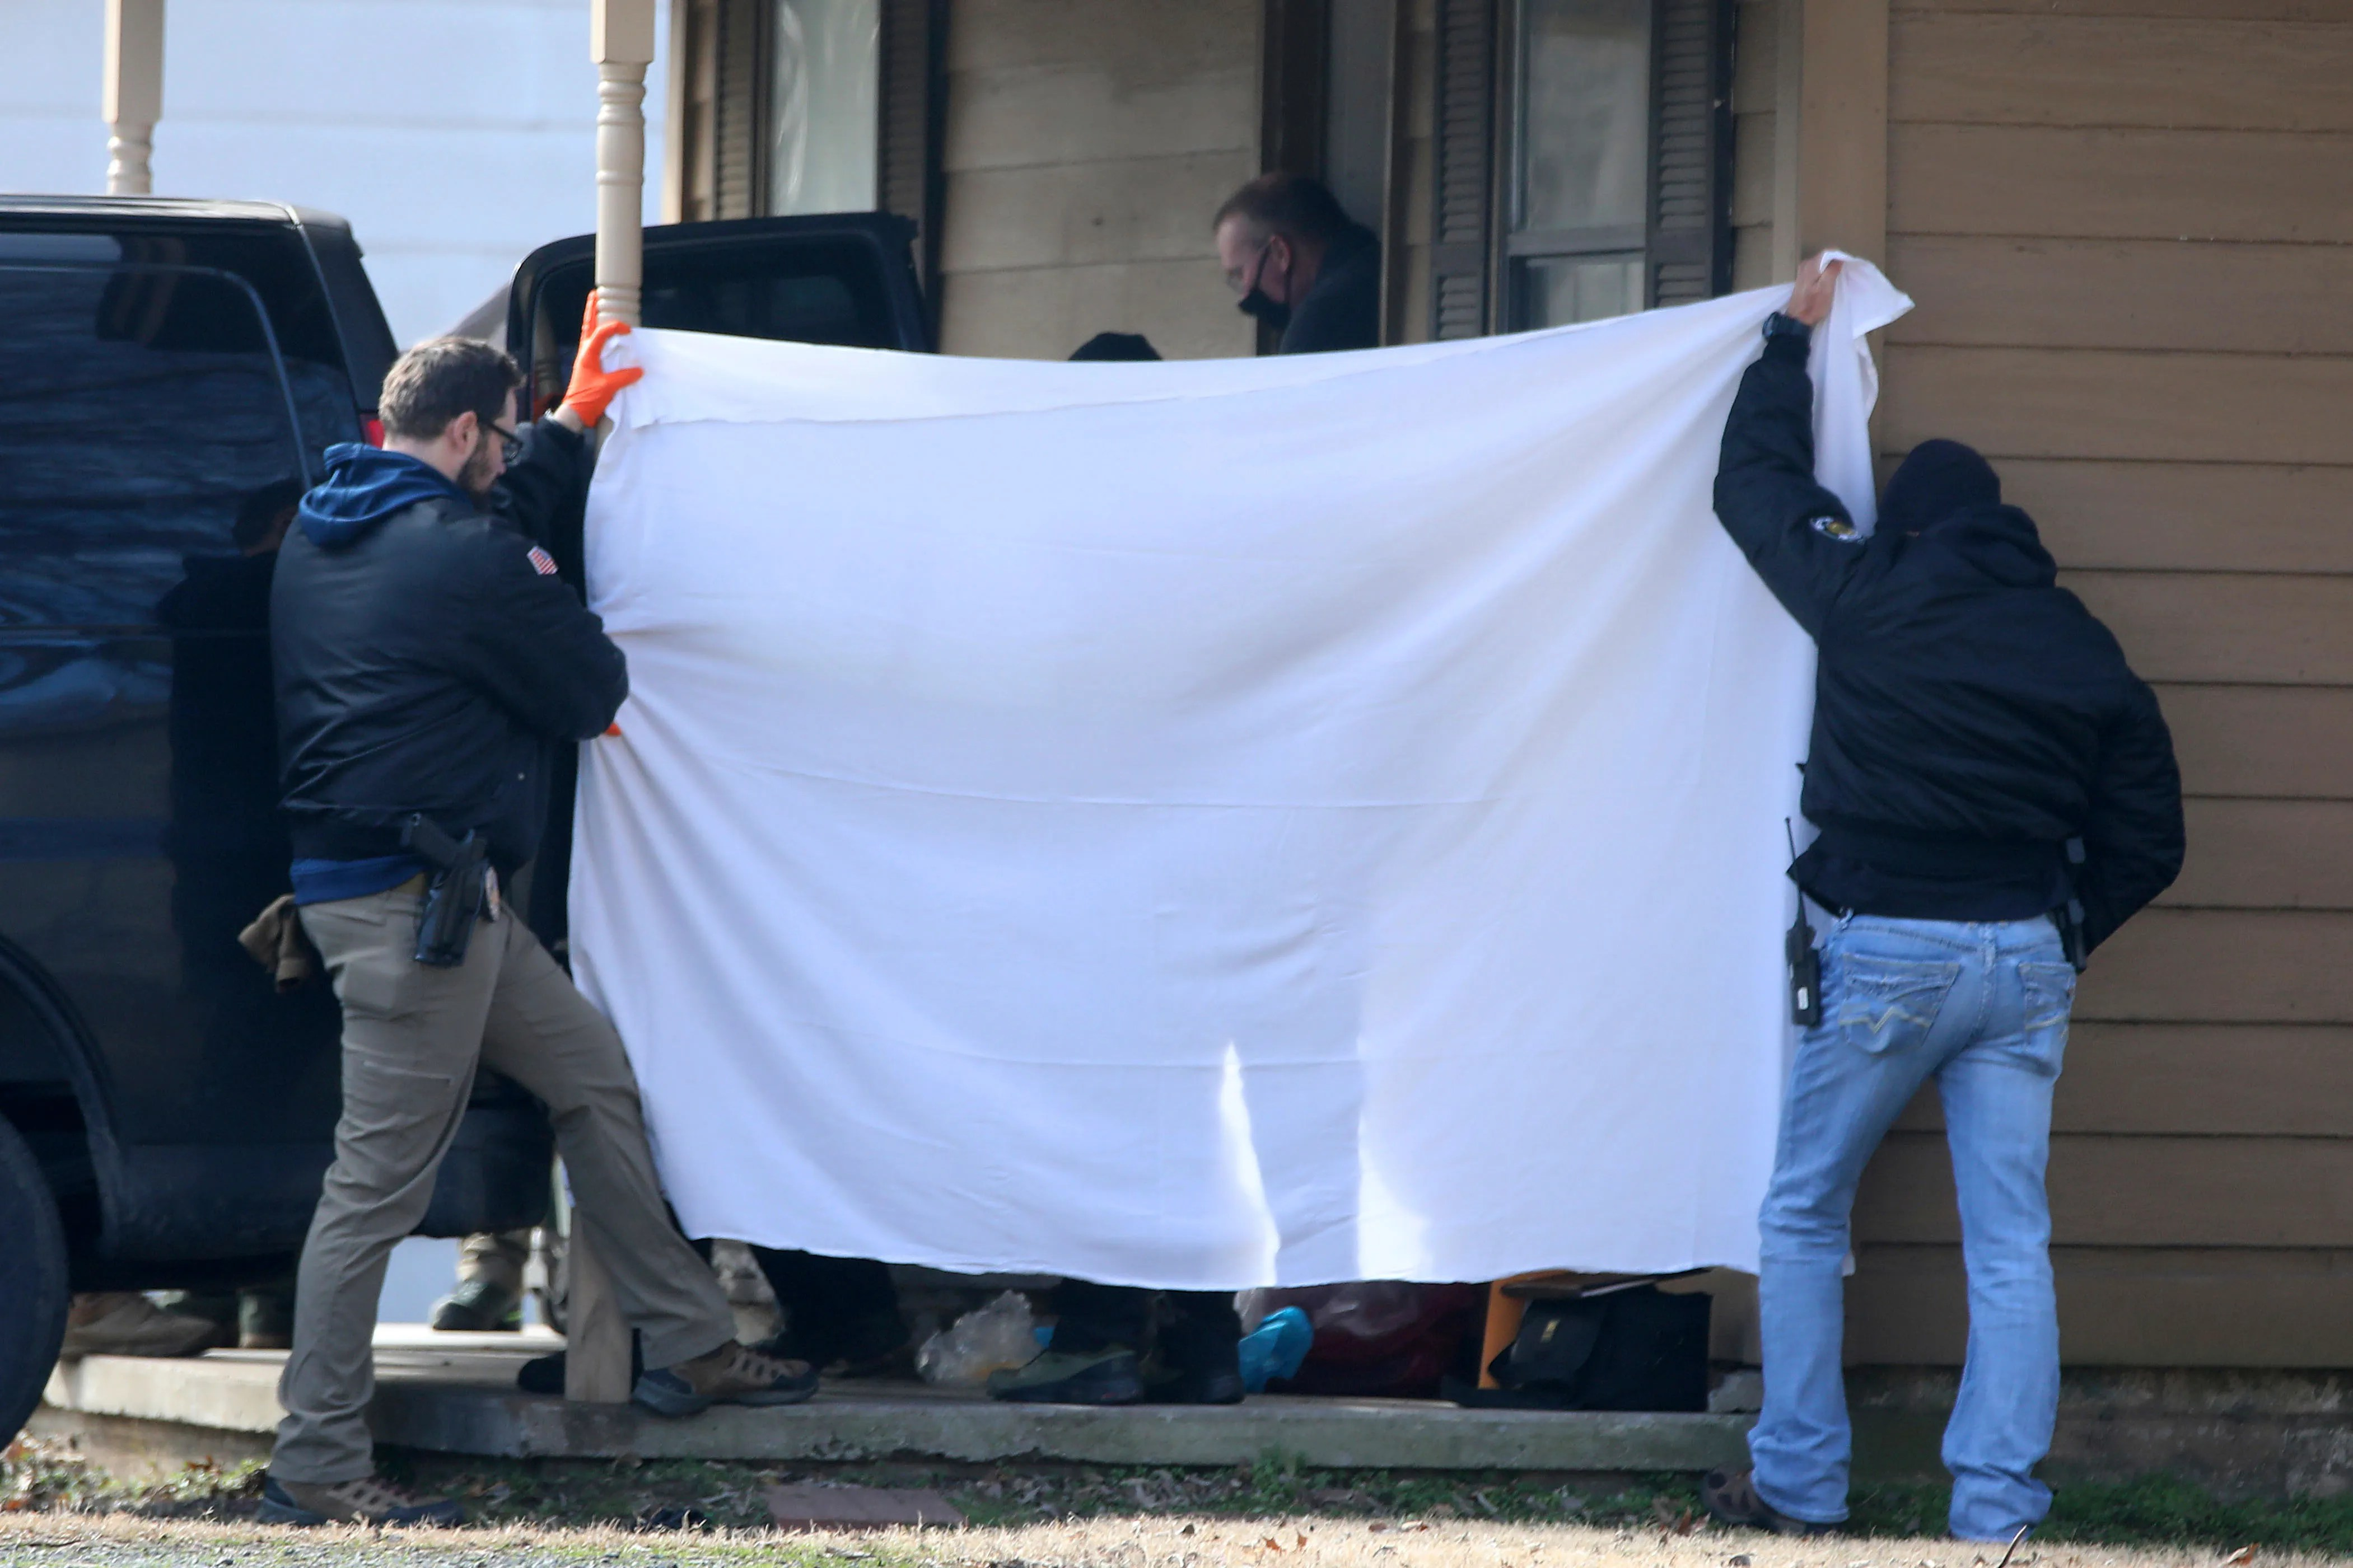 Investigators block the public's view as bodies are removed from the scene of a shooting on Tuesday, Feb. 2, 2021 in Muskogee, Okla.